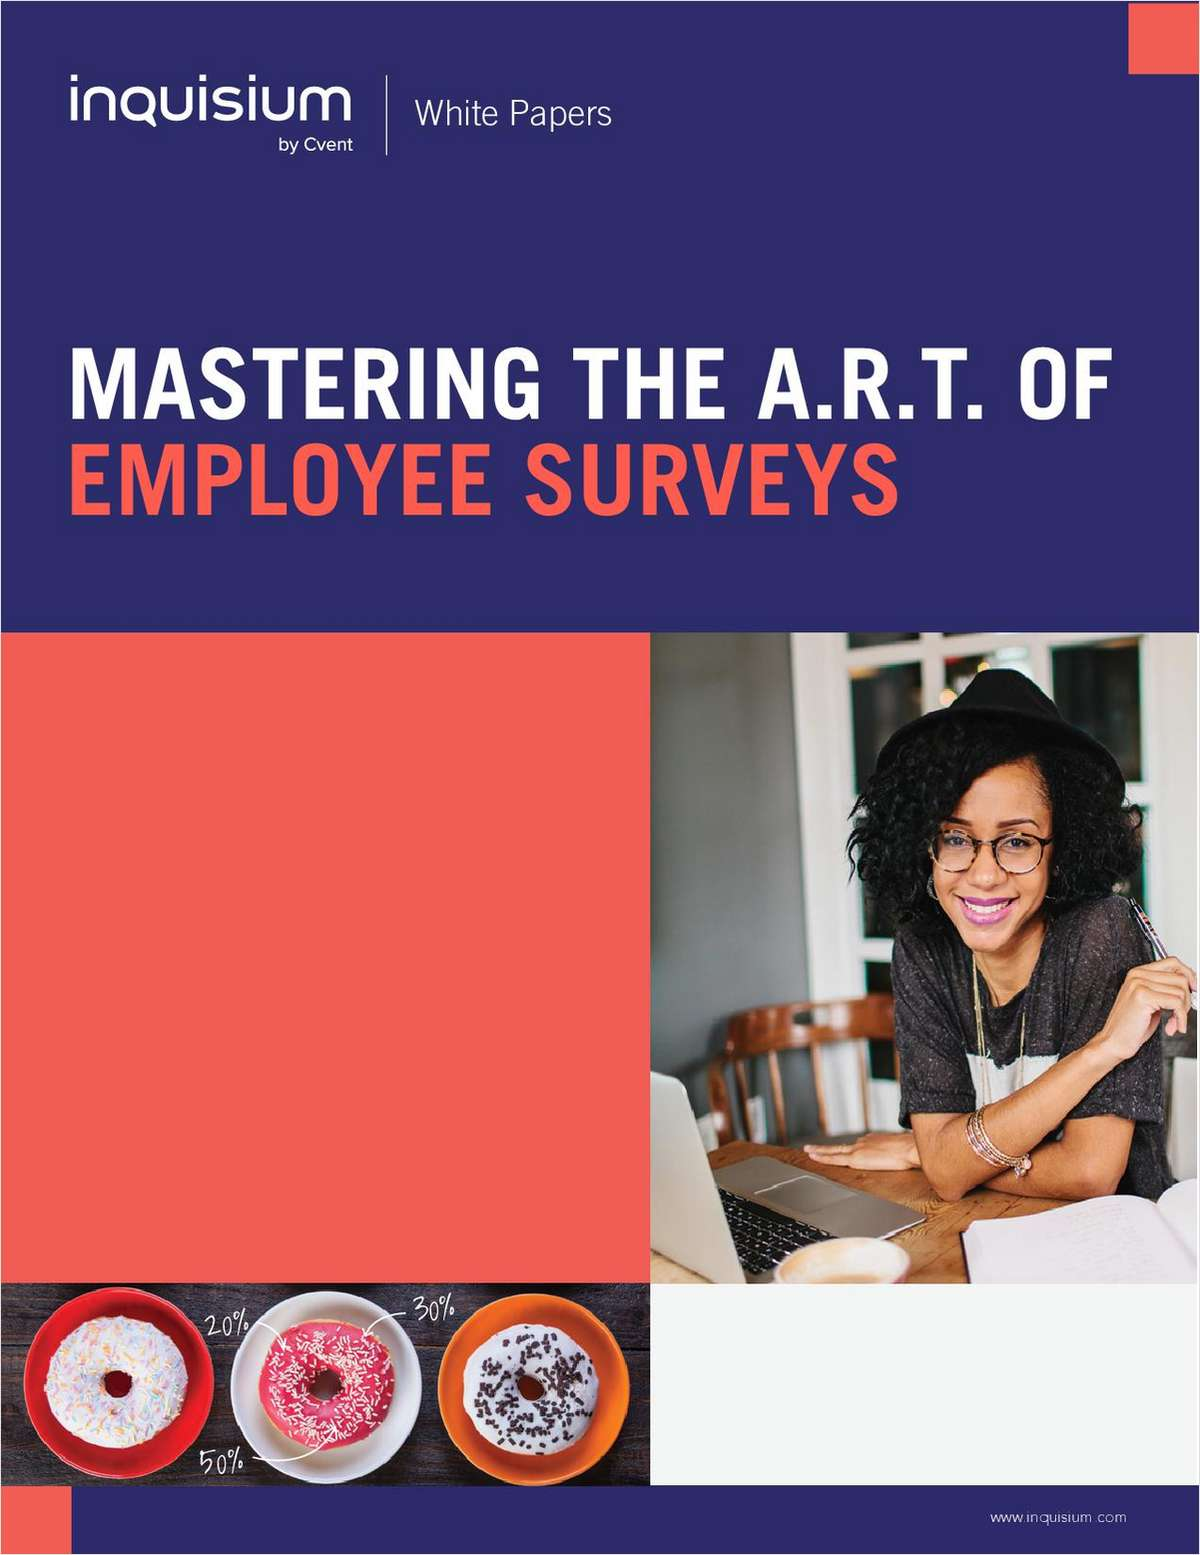 Mastering the A.R.T. of Employee Surveys